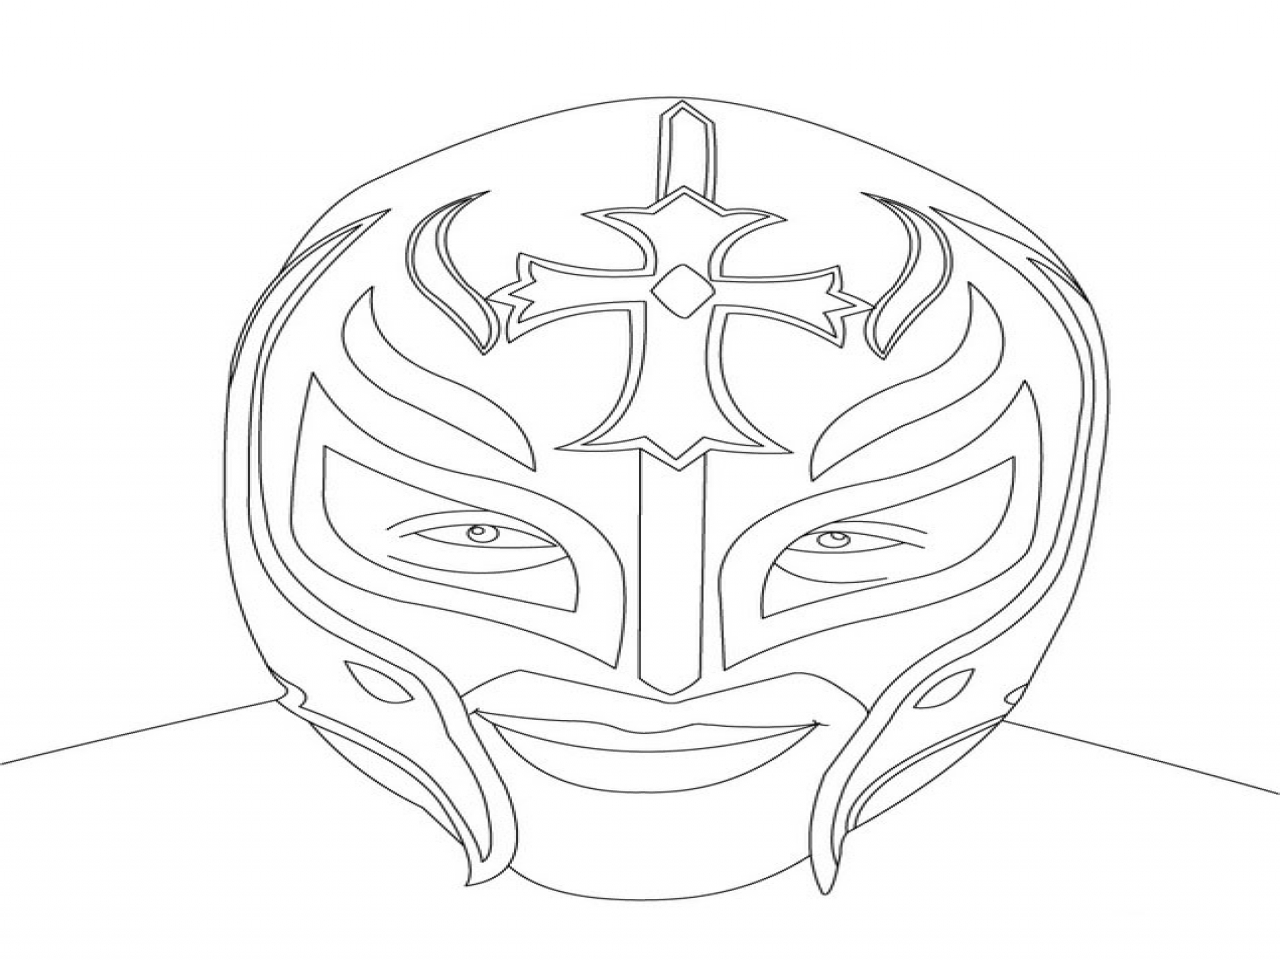 rey mysterio coloring mask rey mysterio mask drawing free download on clipartmag mysterio rey mask coloring